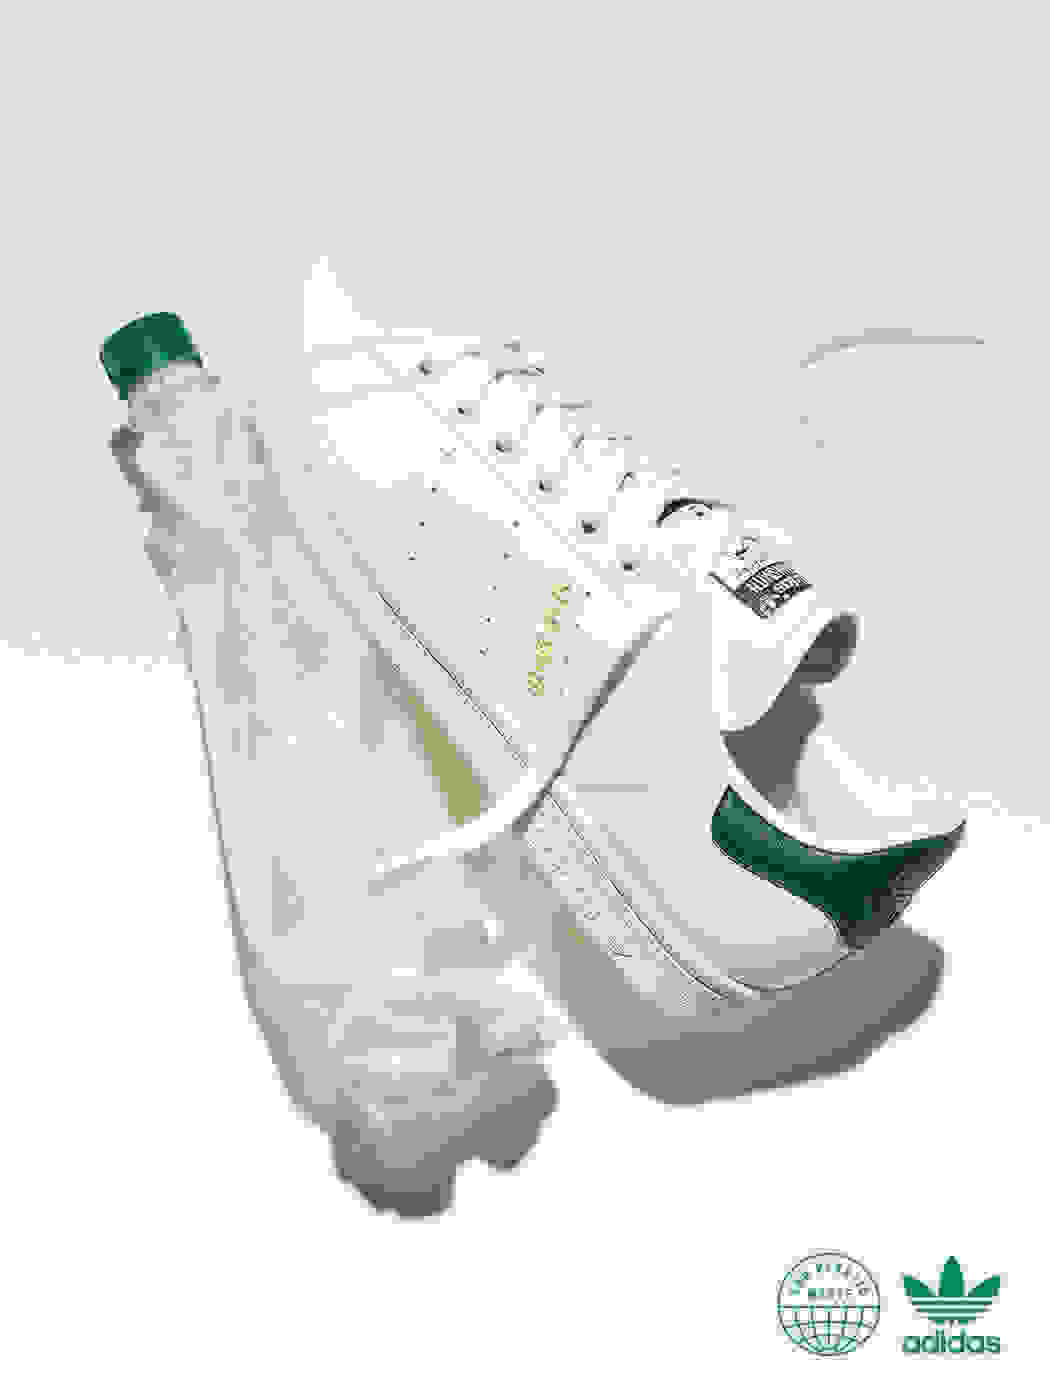 A Stan Smith shoe next to a crumpled water bottle on a white background. Next to it, a Stan Smith shoe with a bottle cap near the toe.